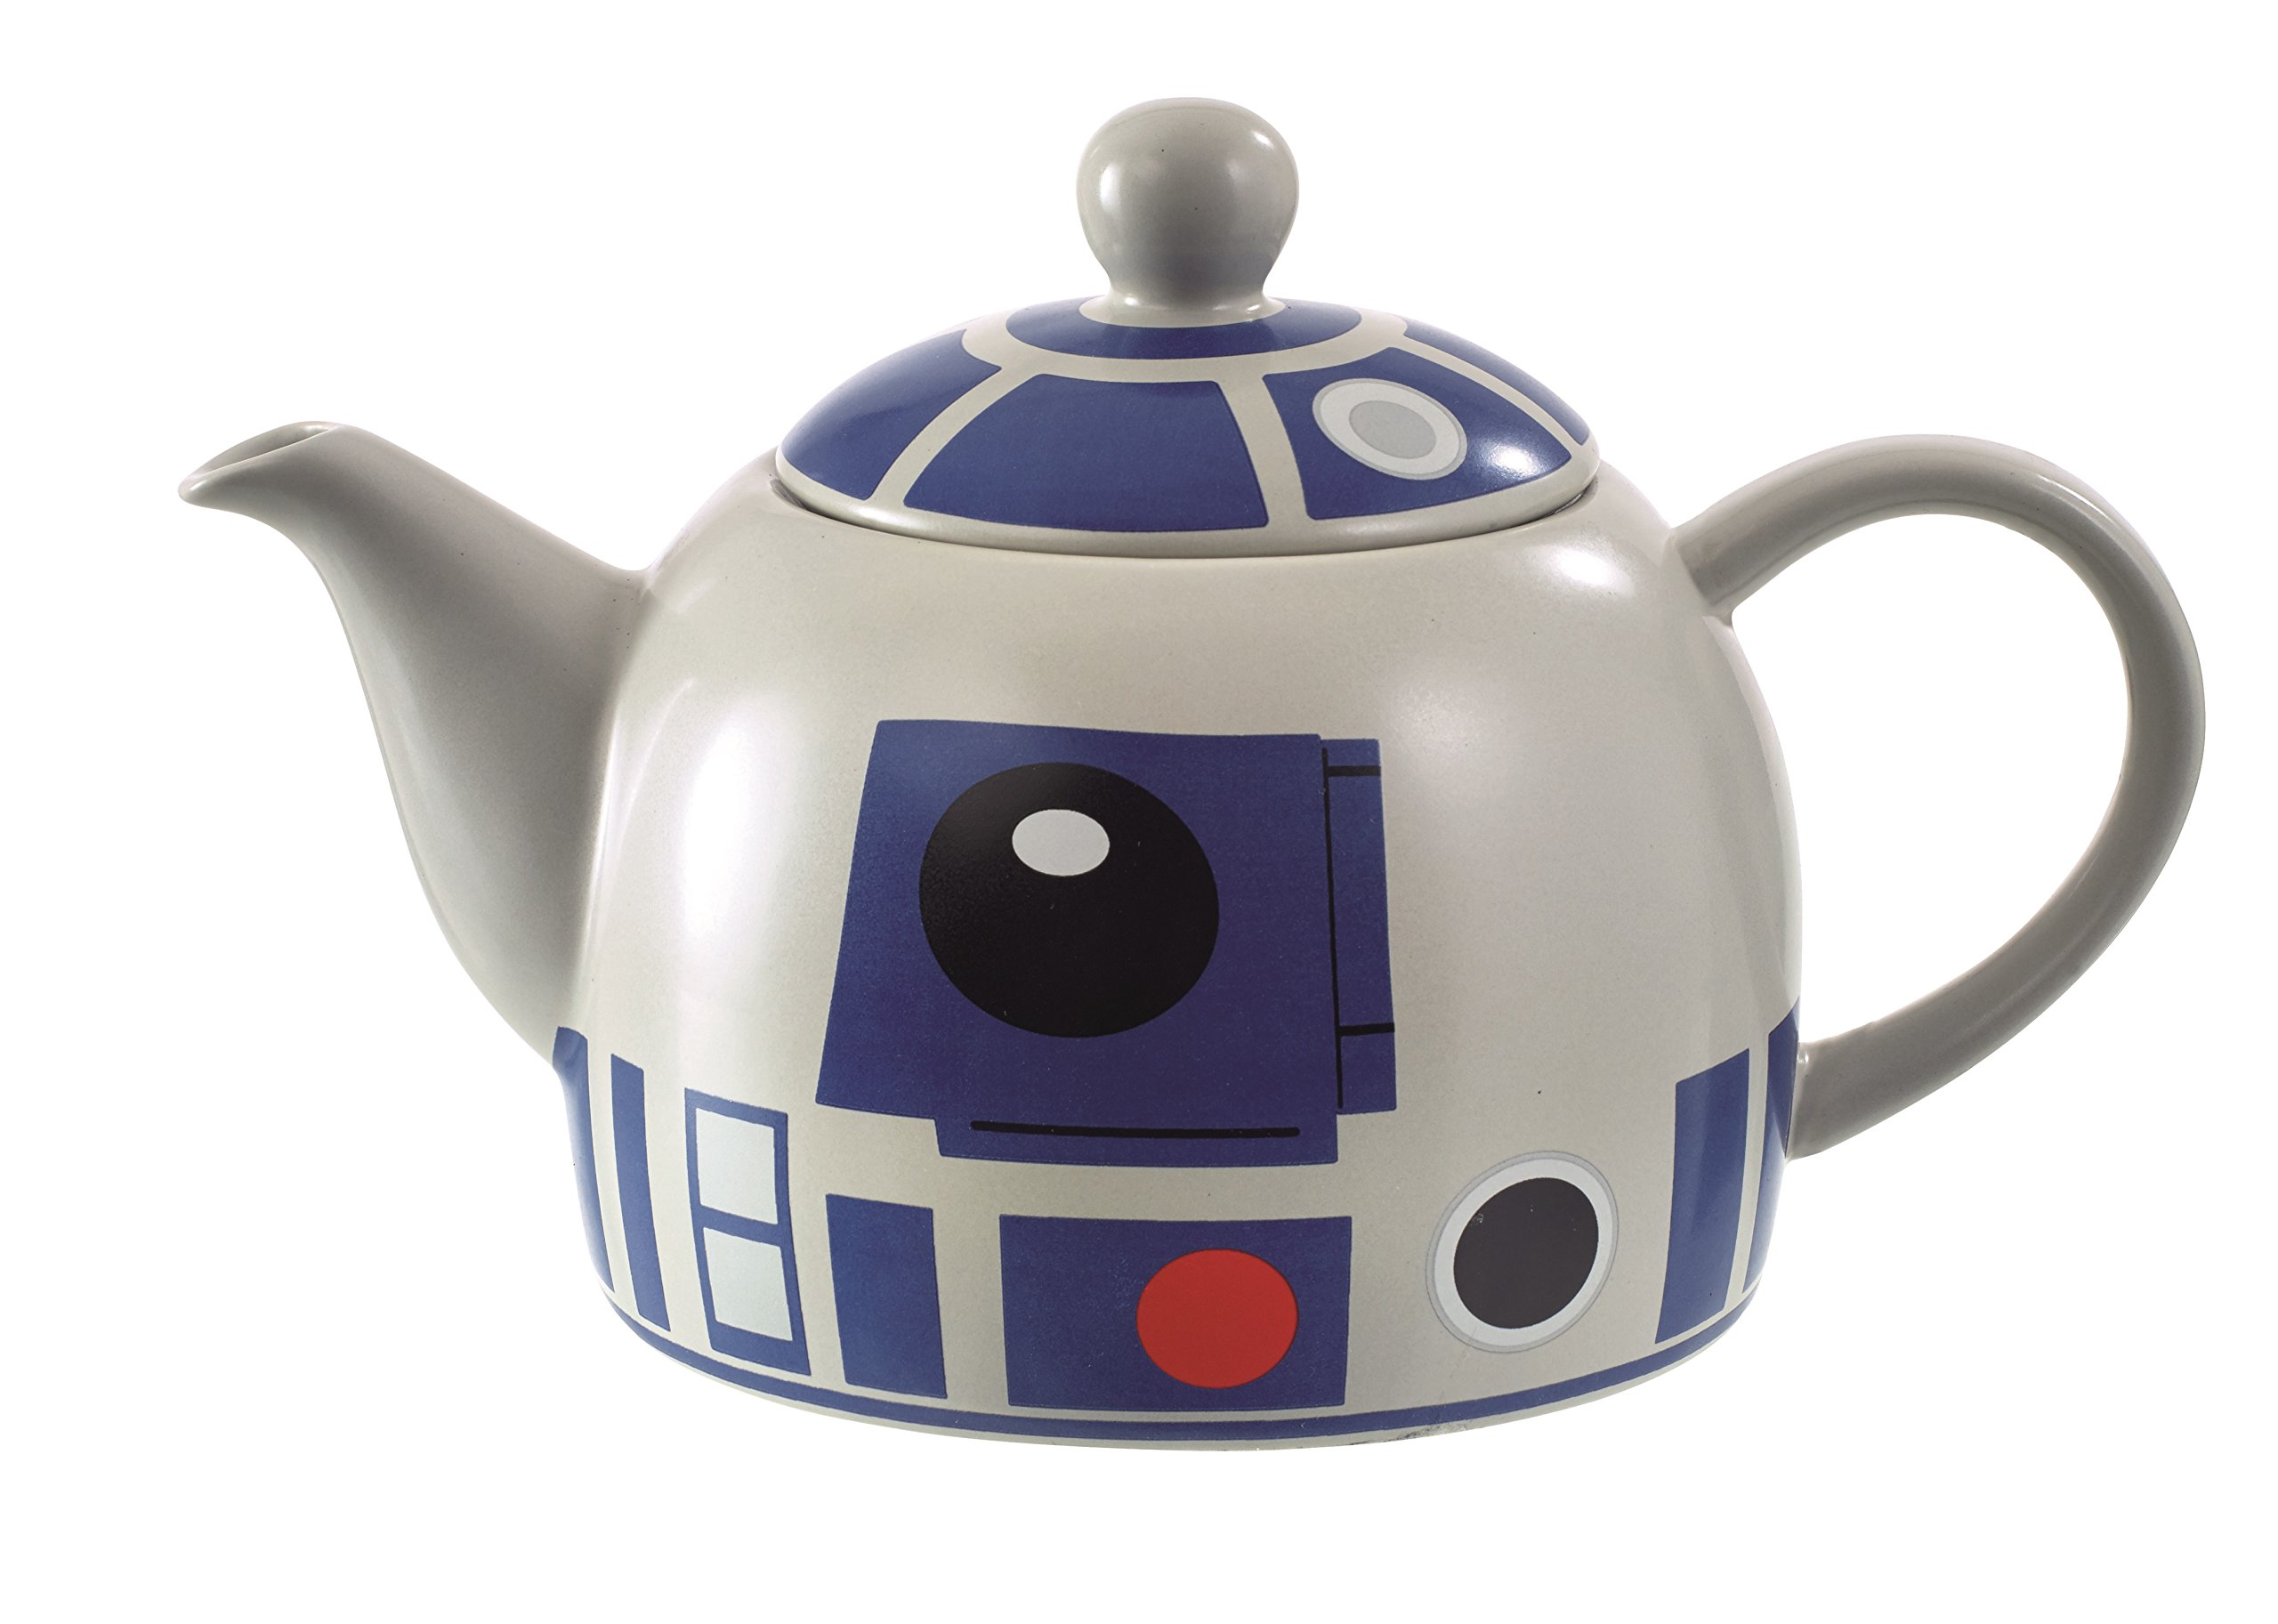 star wars r2d2 teapot quality ceramic with detailed design